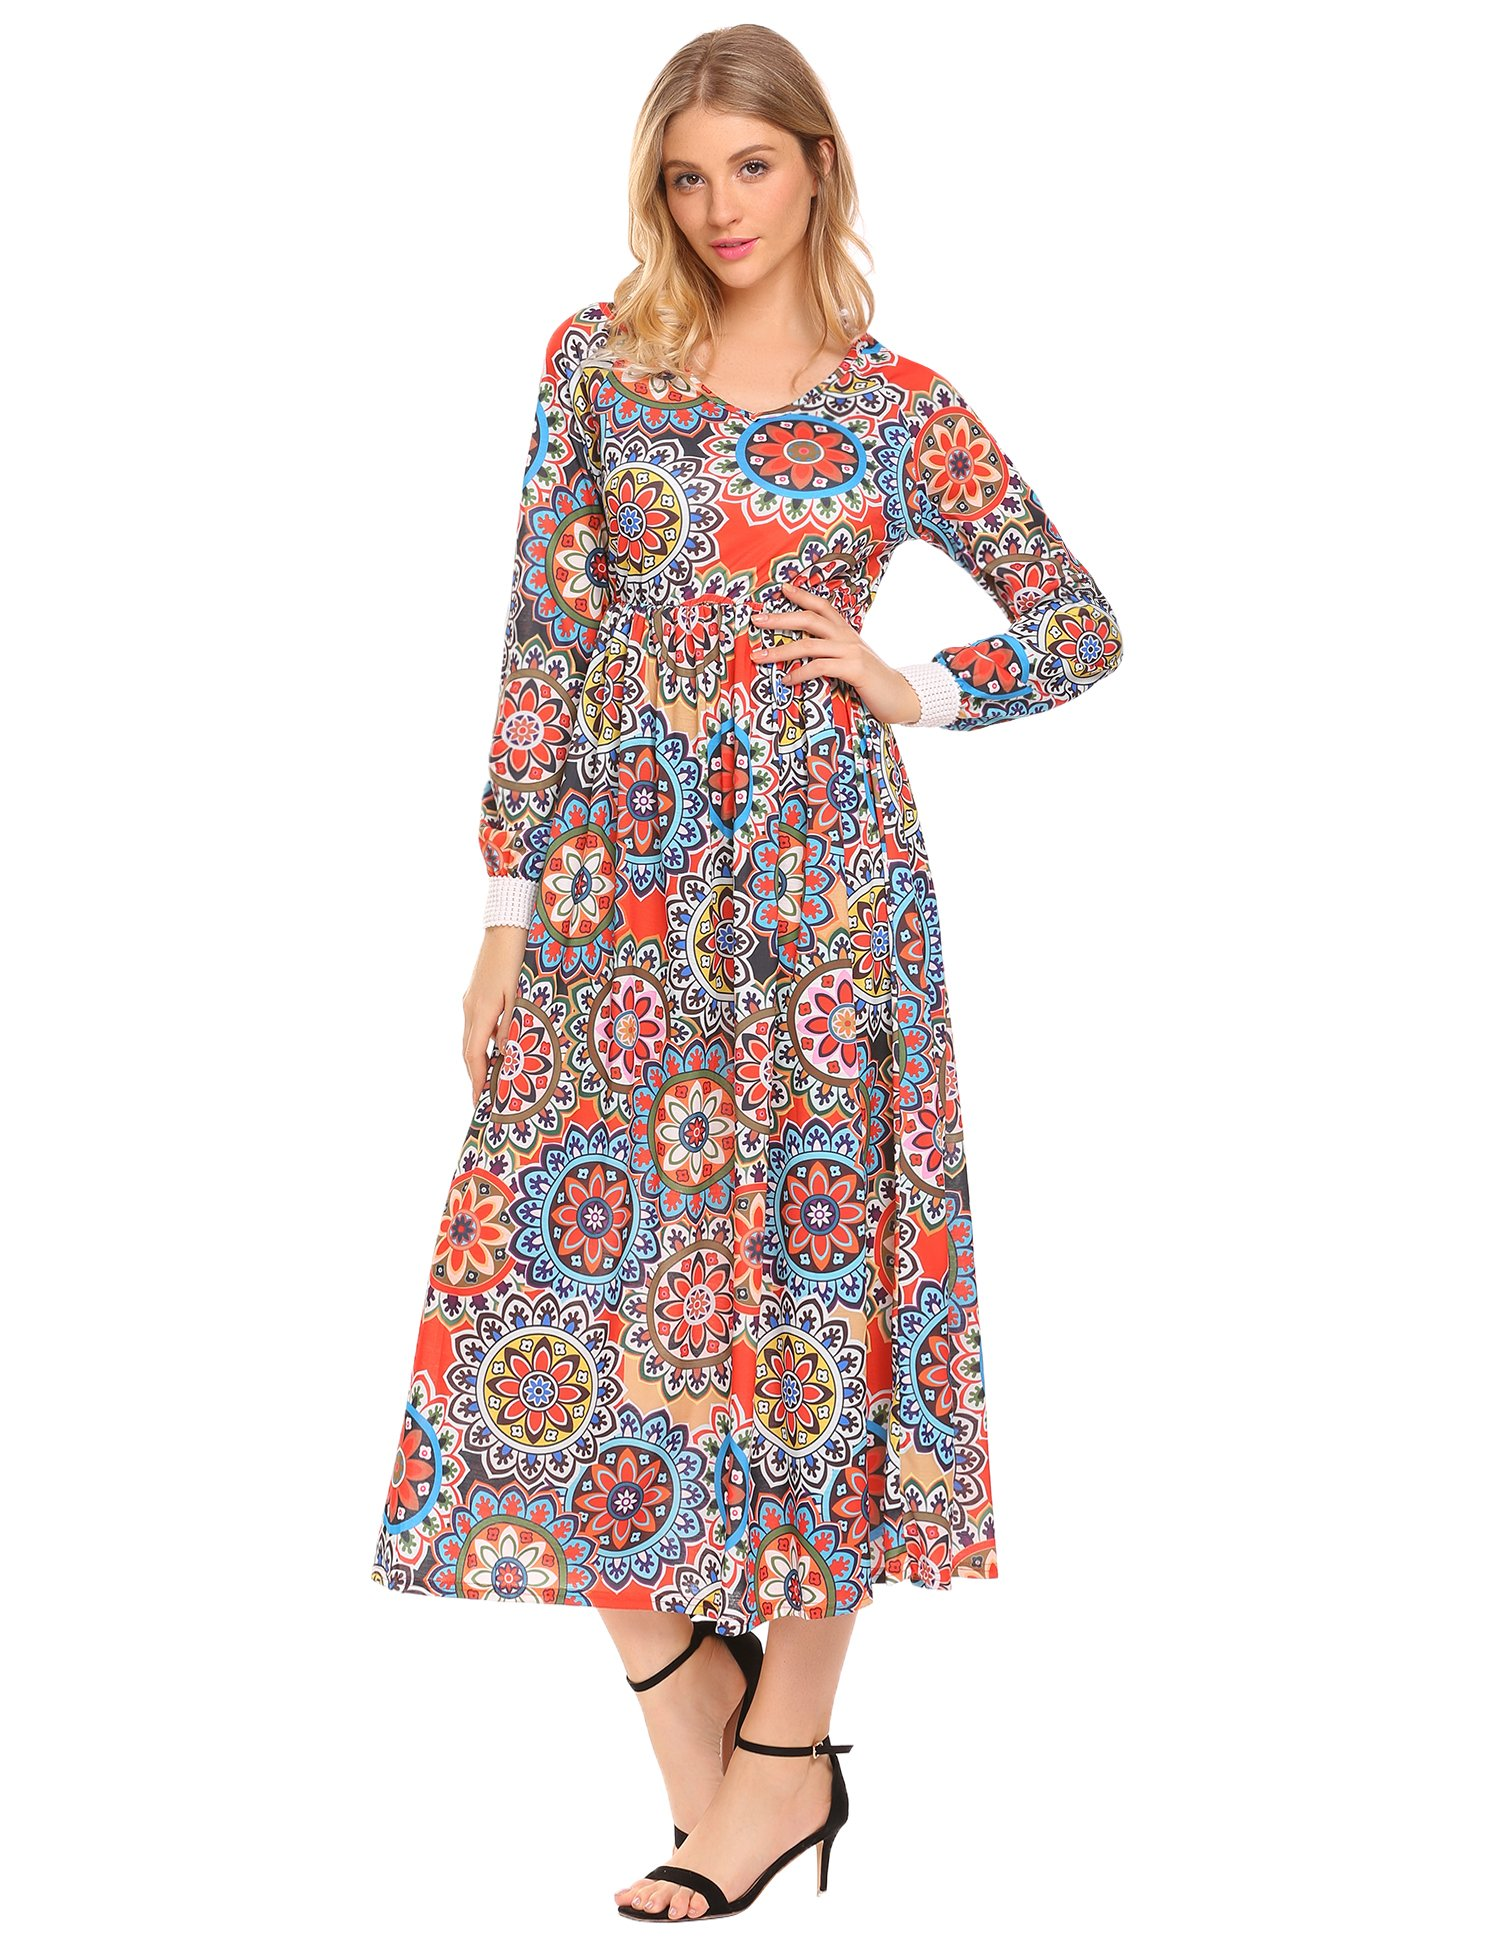 Zeagoo Women's Floral Print Long Sleeve Party Beach Long Maxi Dress